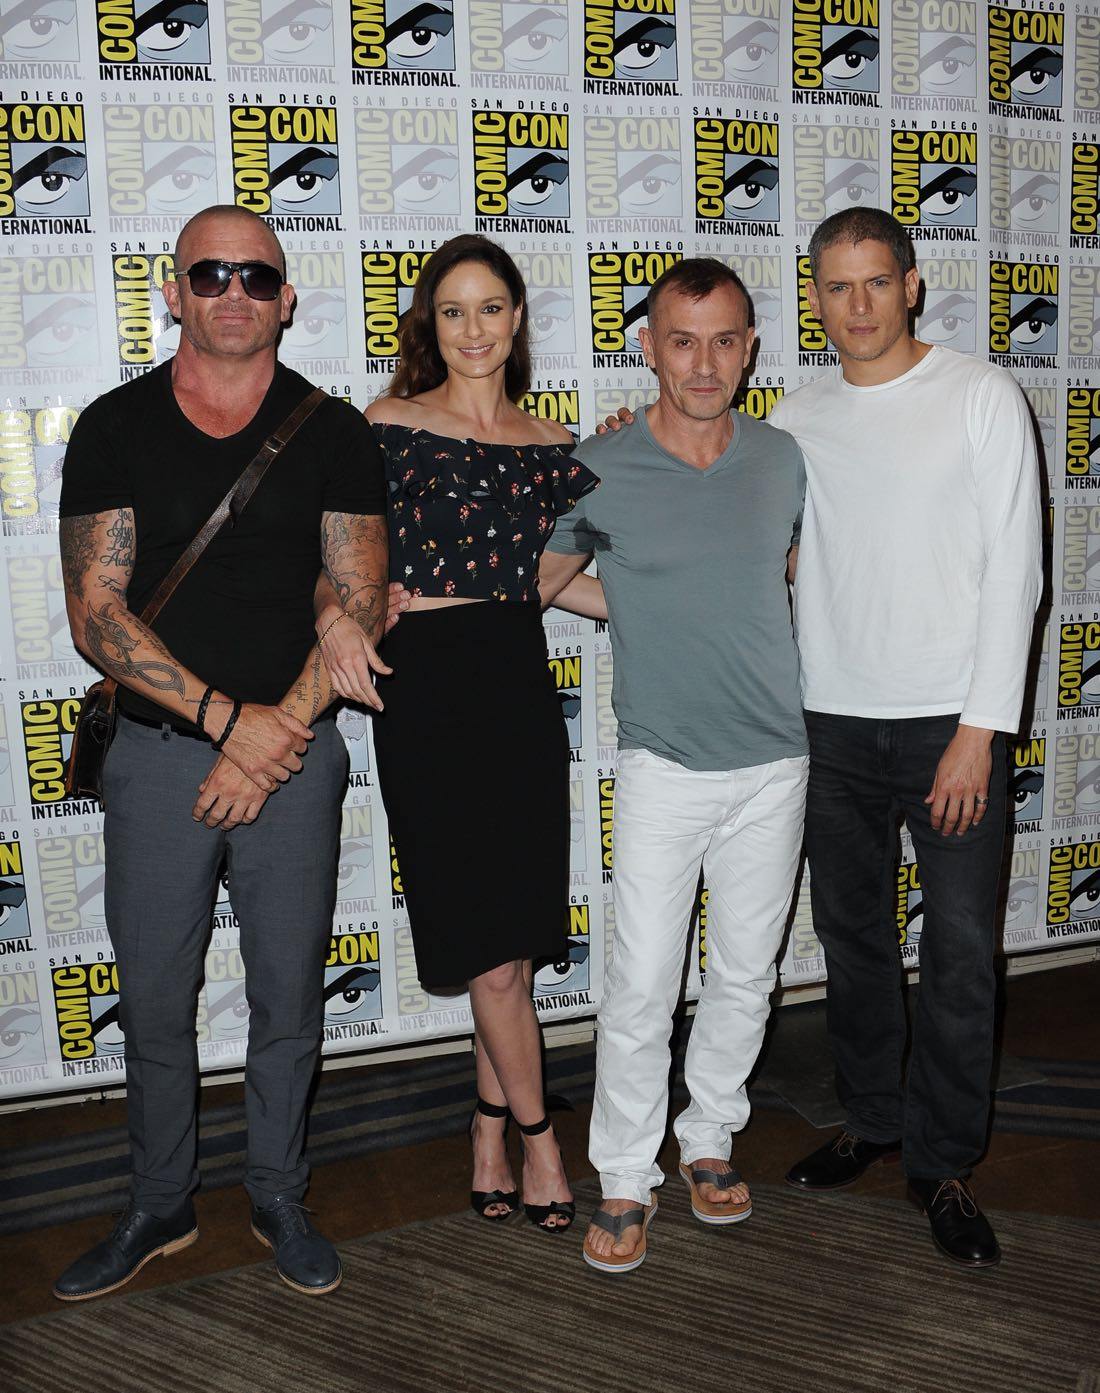 FOX FANFARE AT SAN DIEGO COMIC-CON © 2016: PRISON BREAK cast member Domininc Pucell, Sarah Wayne Callies, Robert Knepper and Wentworth Miller during the PRISON BREAK press room on Sunday, July 24 at the FOX FANFARE AT SAN DIEGO COMIC-CON © 2016. CR: Scott Kirkland/FOX © 2016 FOX BROADCASTING